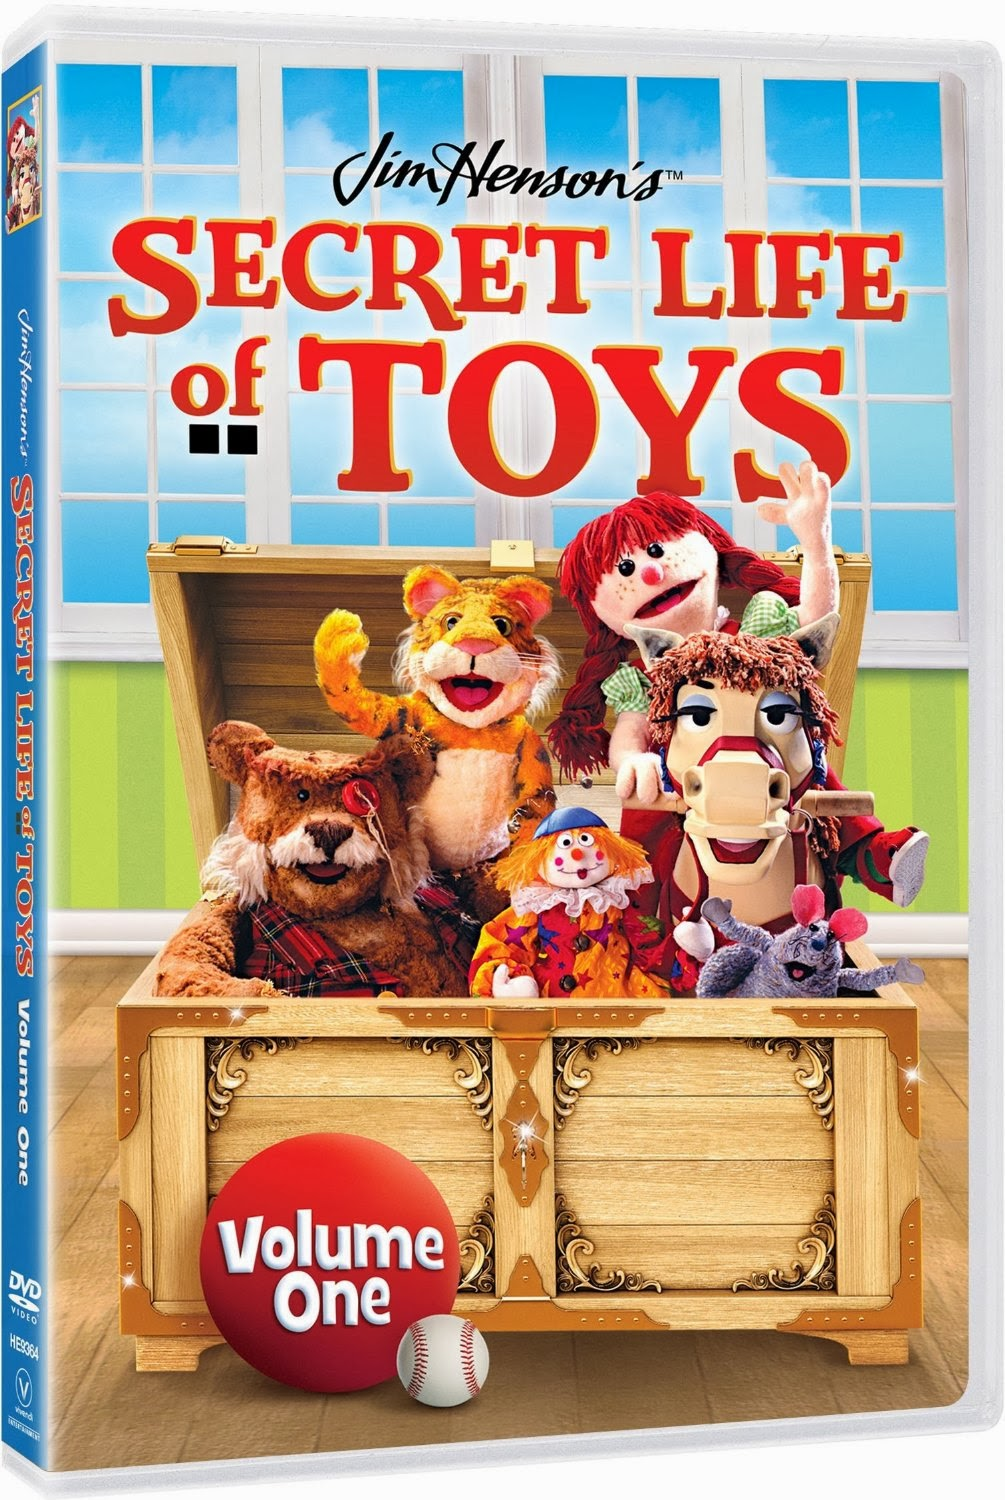 Now Available! Jim Henson's Secret Life of Toys Volume One